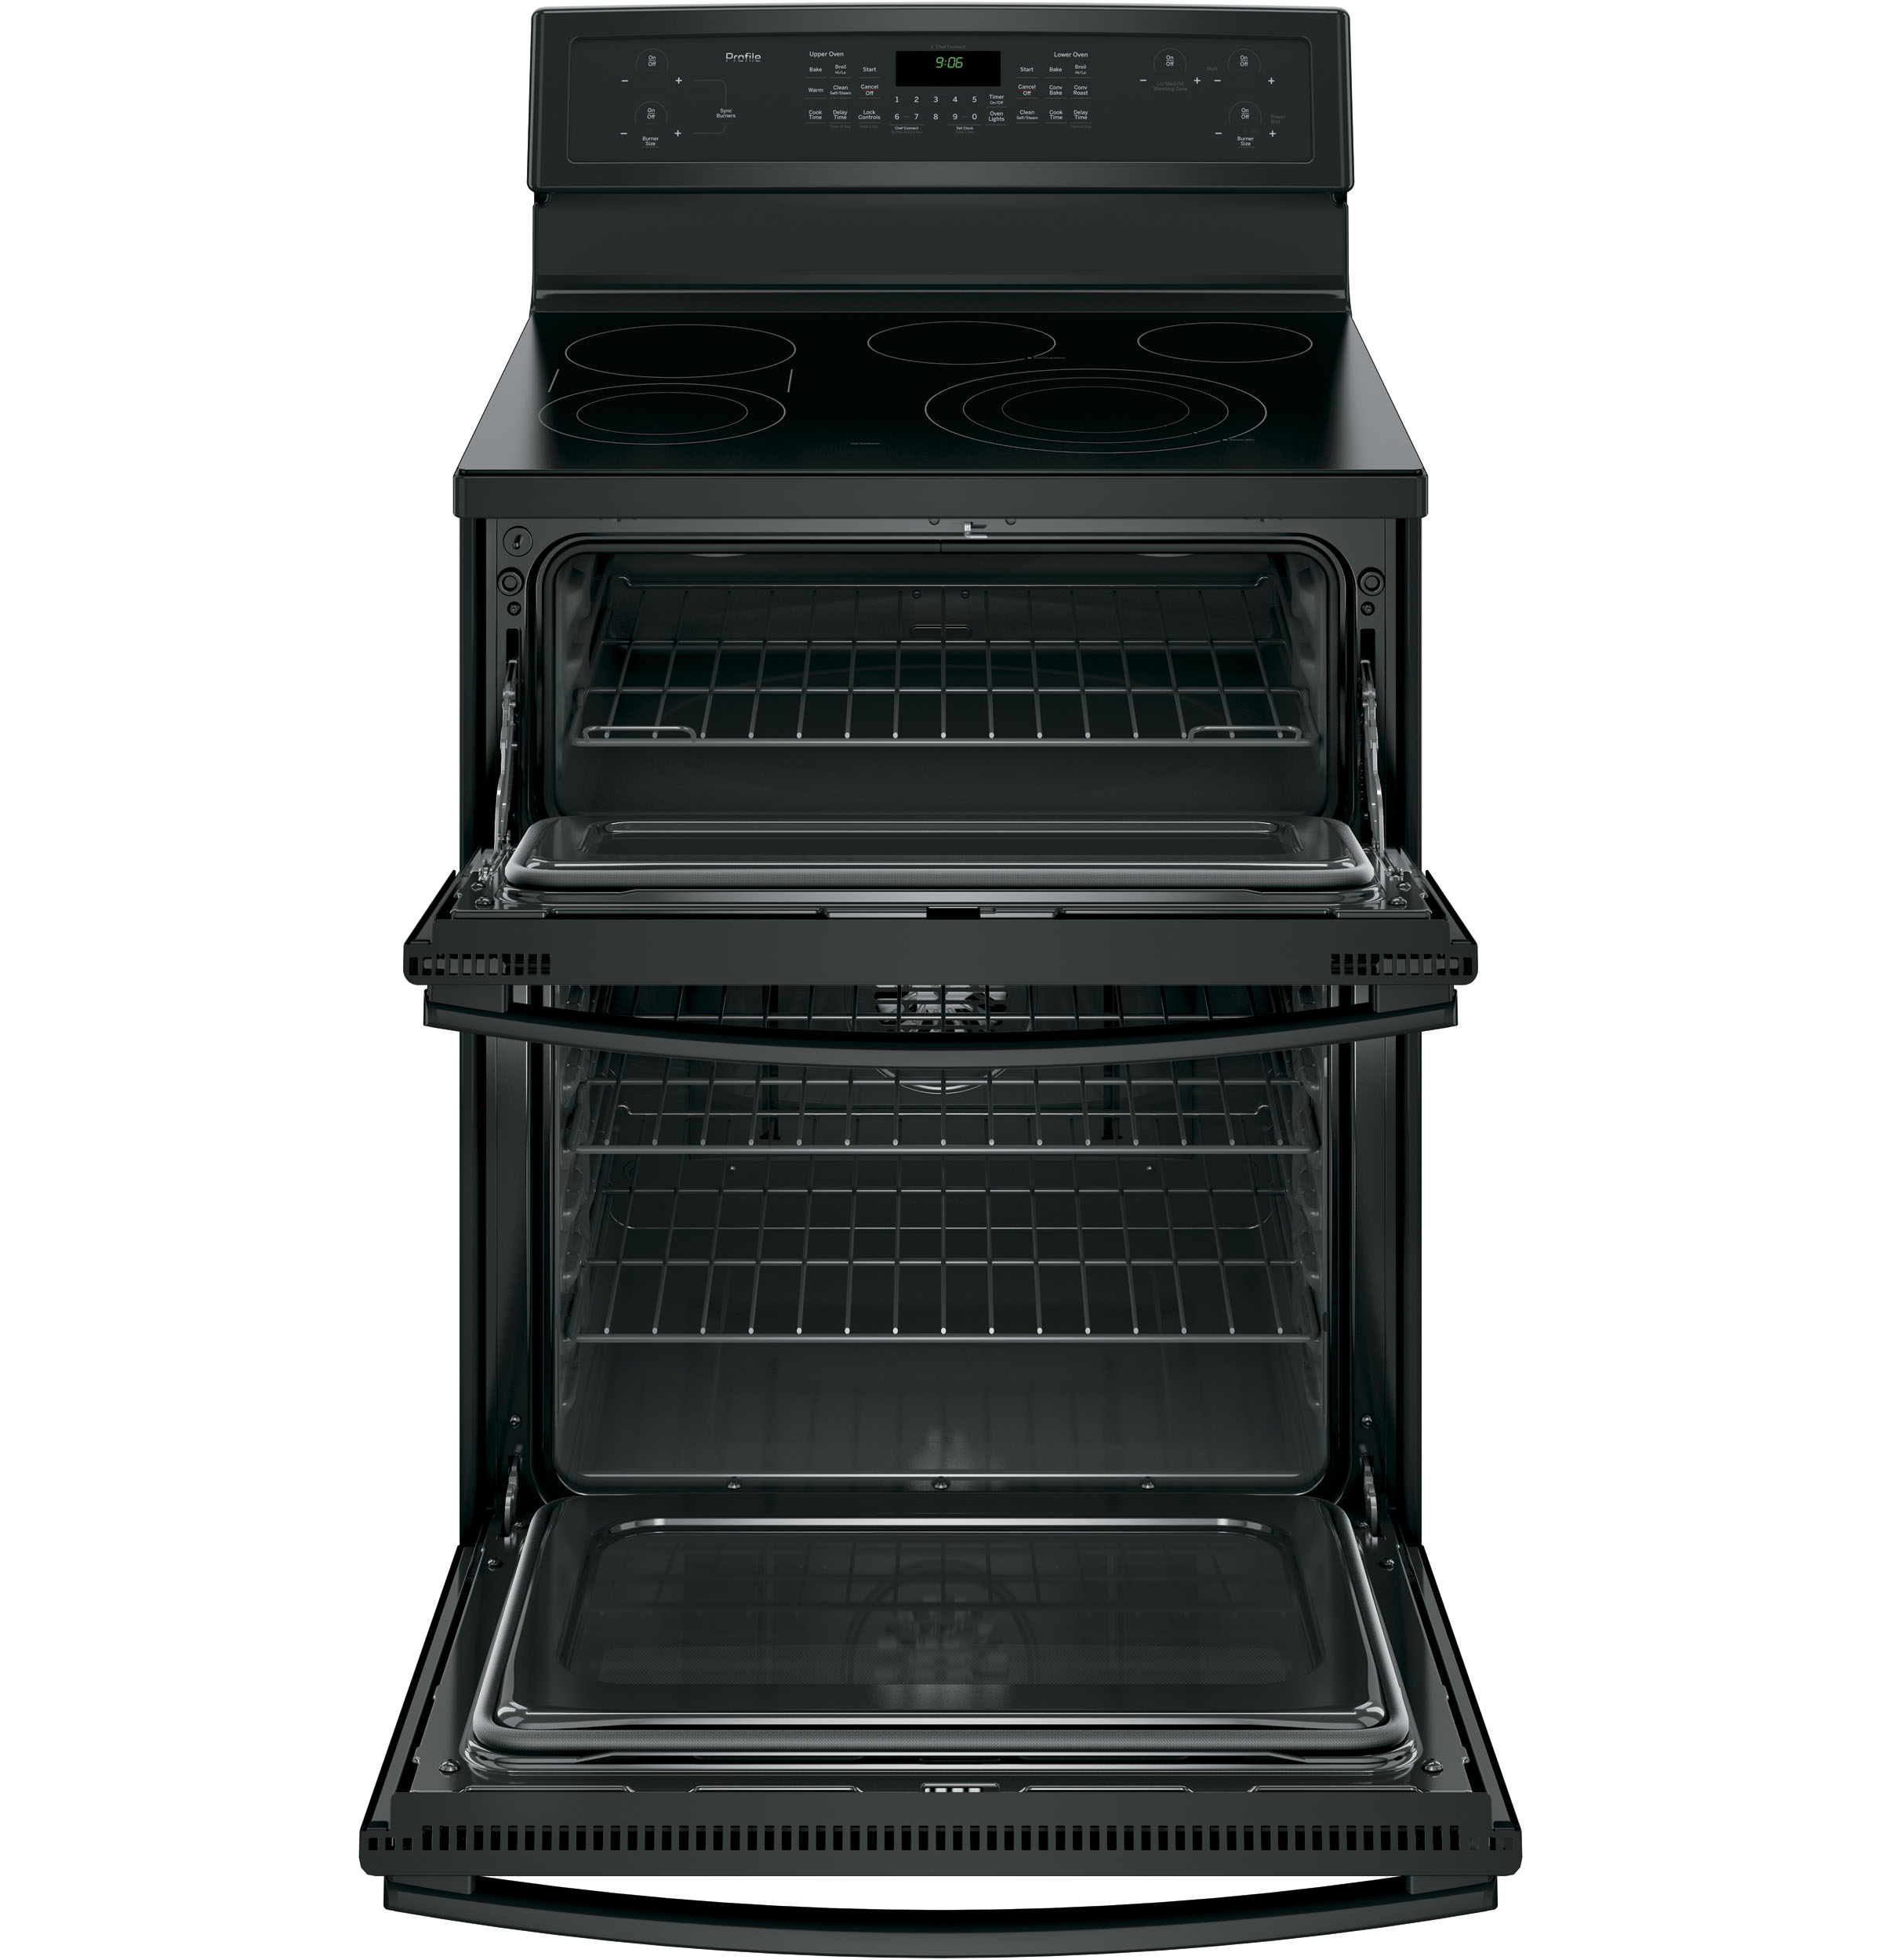 GE Profile PB960DJBB 6.6 cu. ft. Electric Range w/ Double Convection Oven - Black